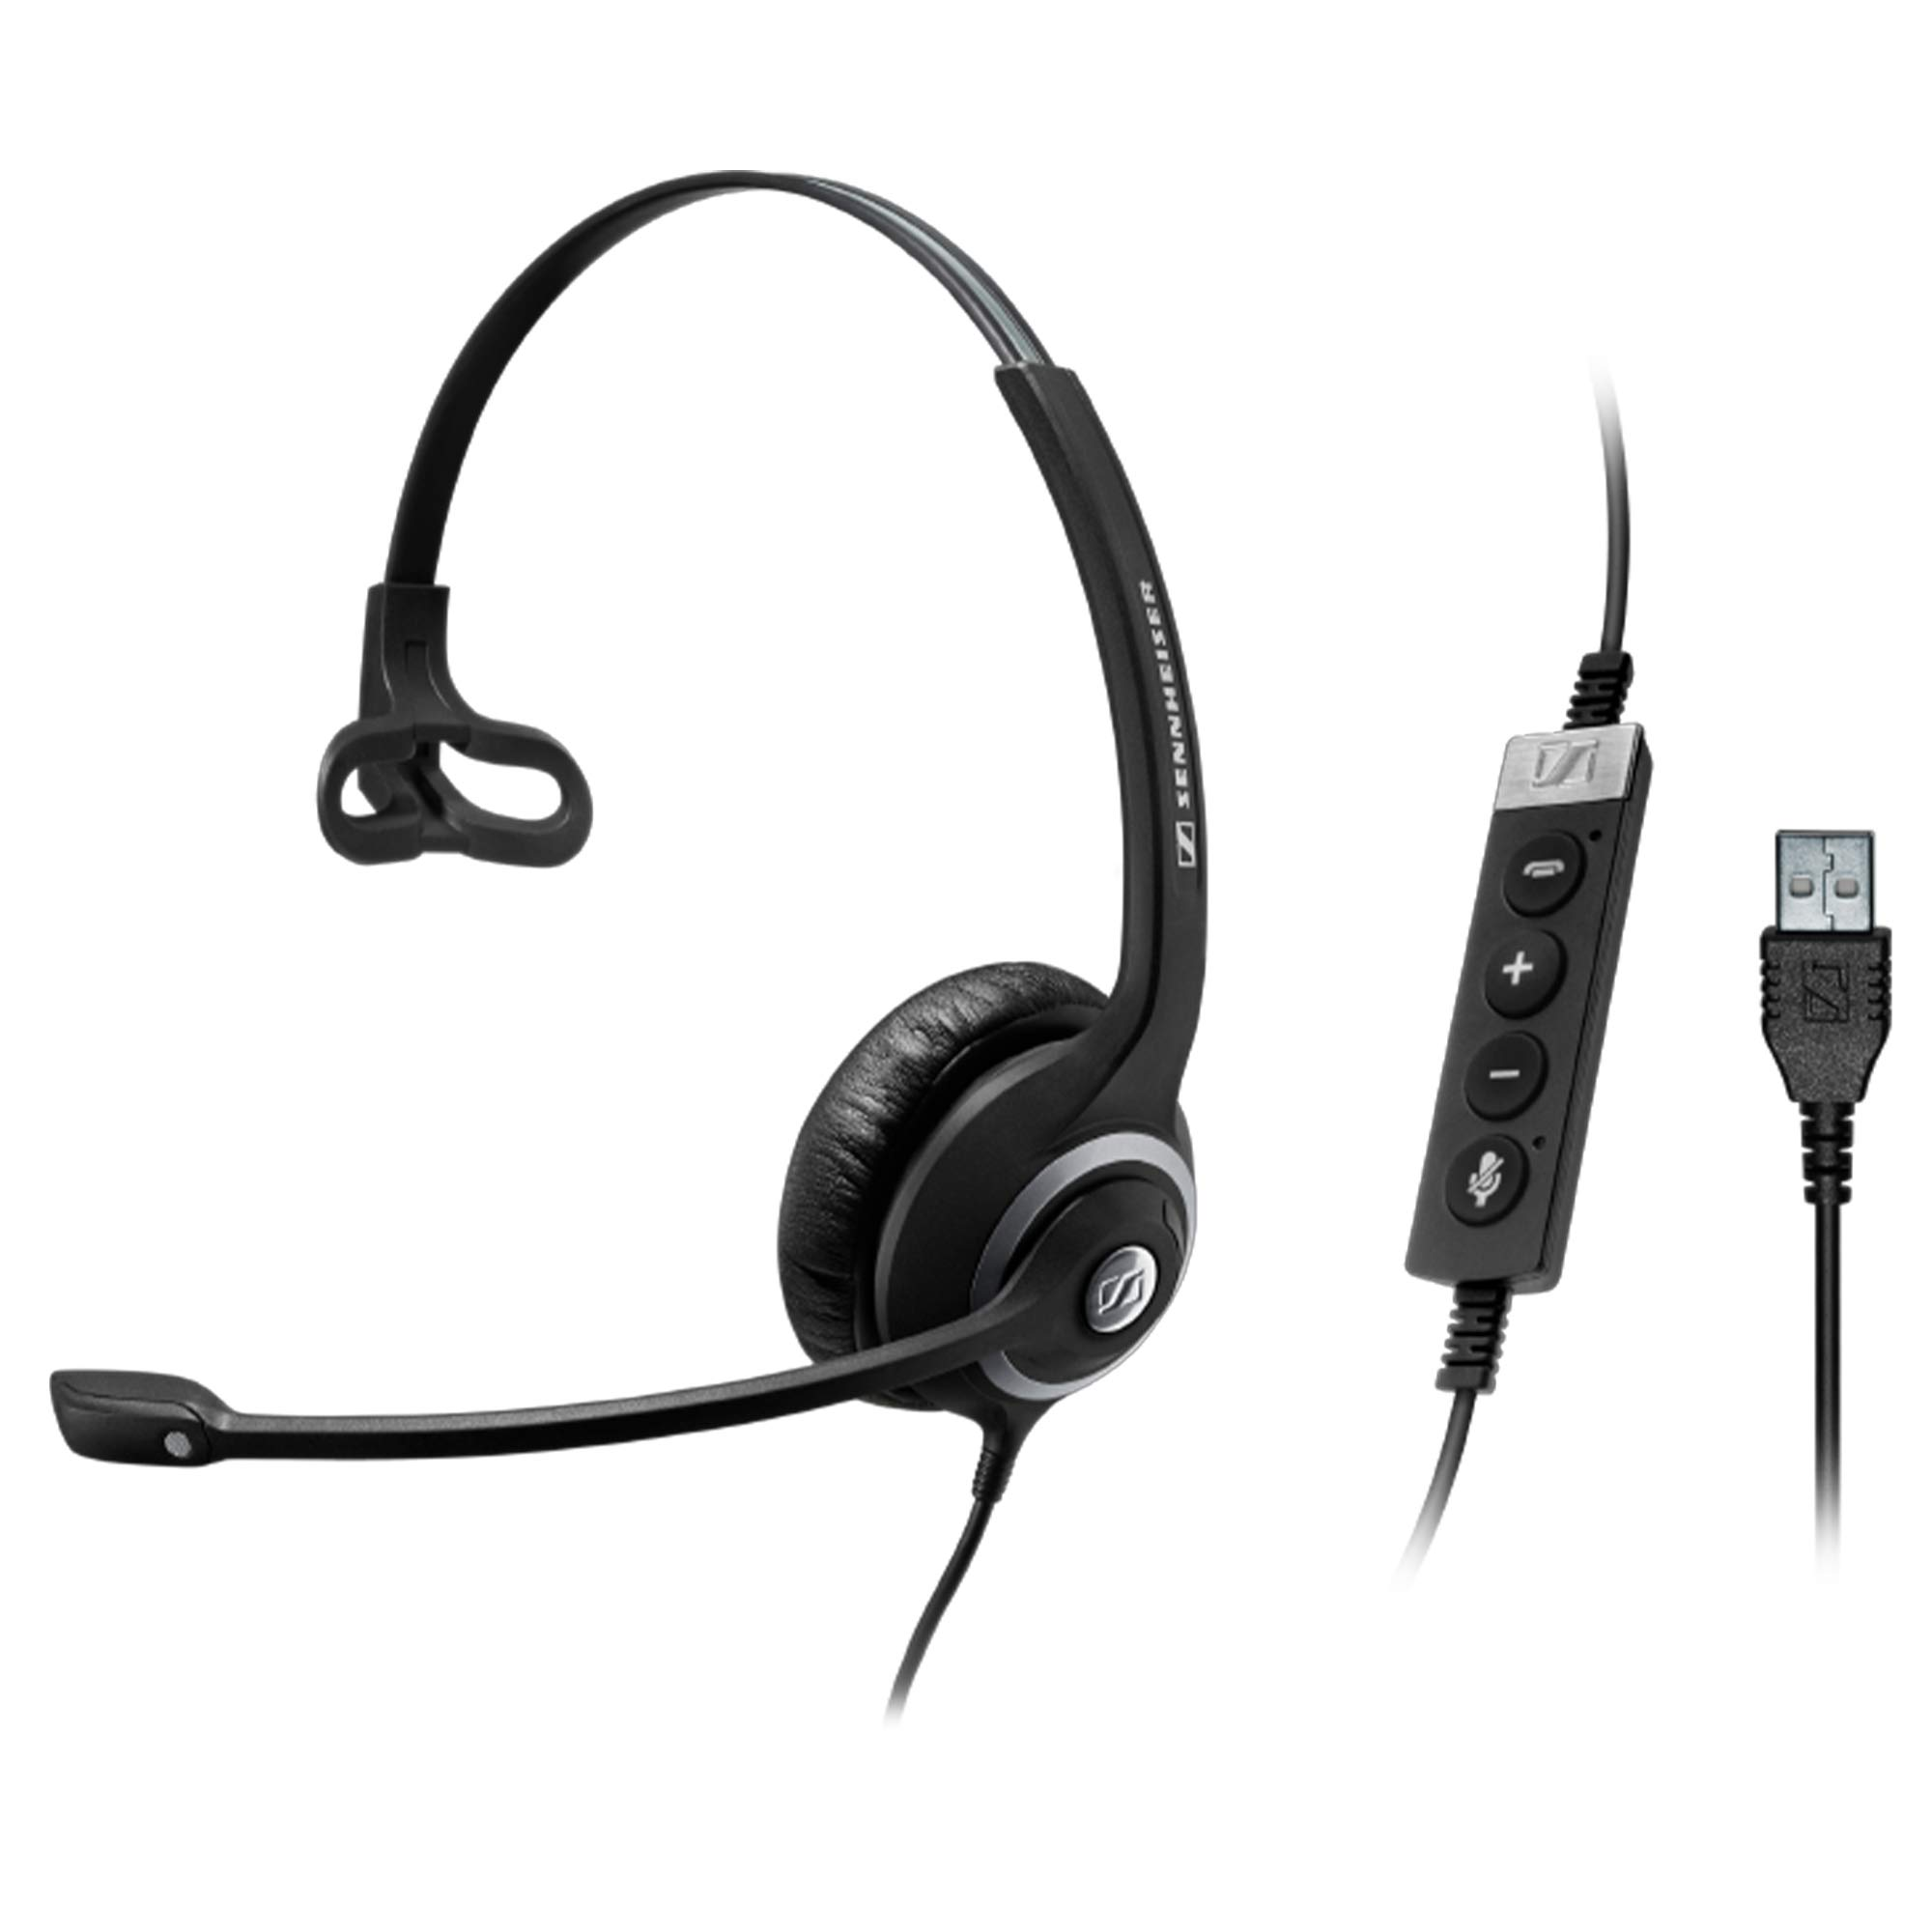 Sennheiser SC 230 USB CTRL II (506480) - Double-Sided Business Headset   For Unified Communications, Softphone, and PC   with HD Sound, Noise-Cancelling Microphone (Black) by Sennheiser Enterprise Solution